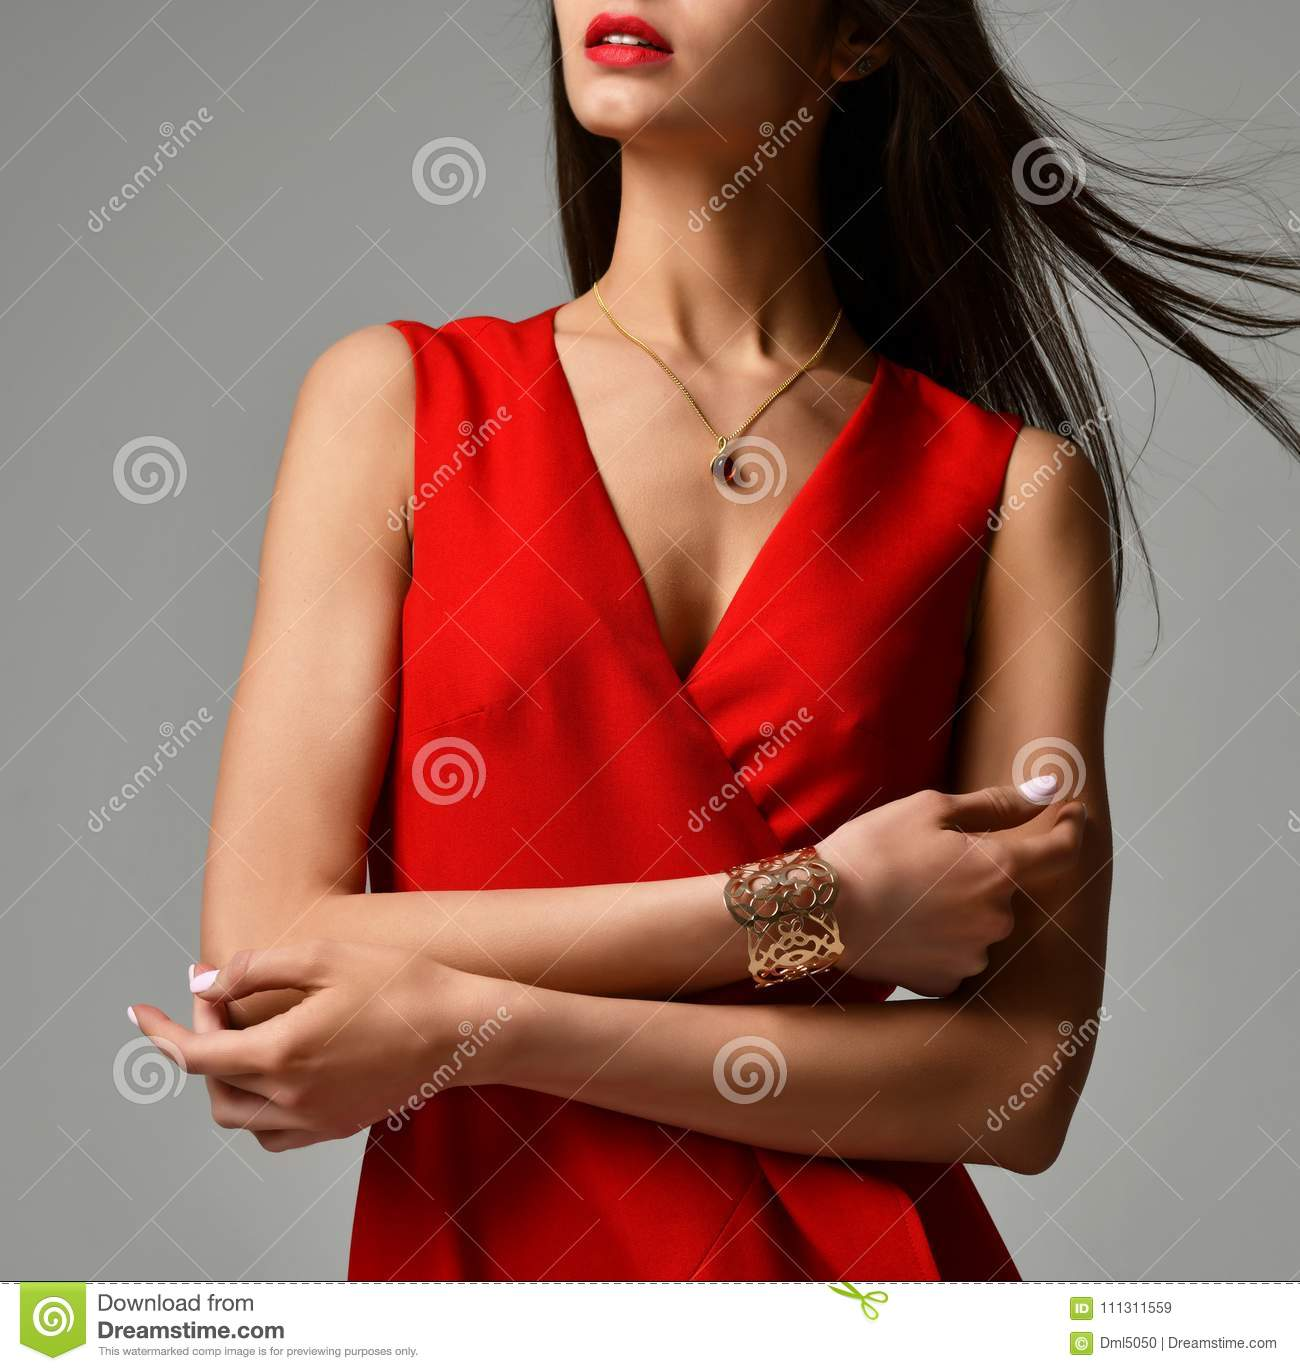 Download Pretty Brunette Woman In Formal Red Dress On Grey Stock Image Image Of Desire